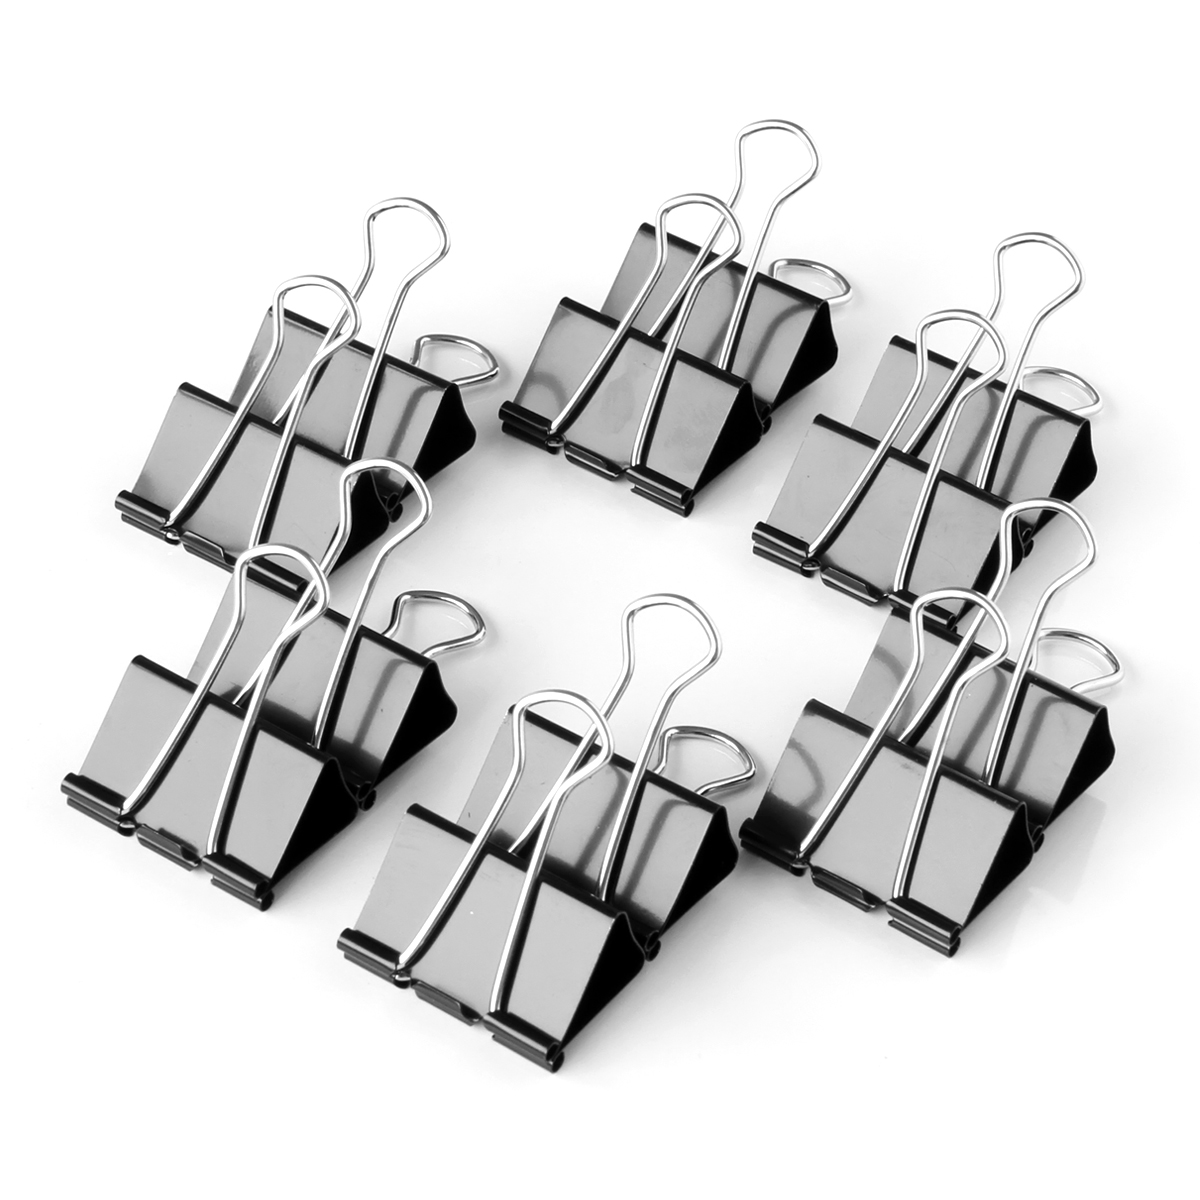 Deli 9545 black binder clips elliot purse 19mm dovetail clamp binder clips paper clips 12 installed